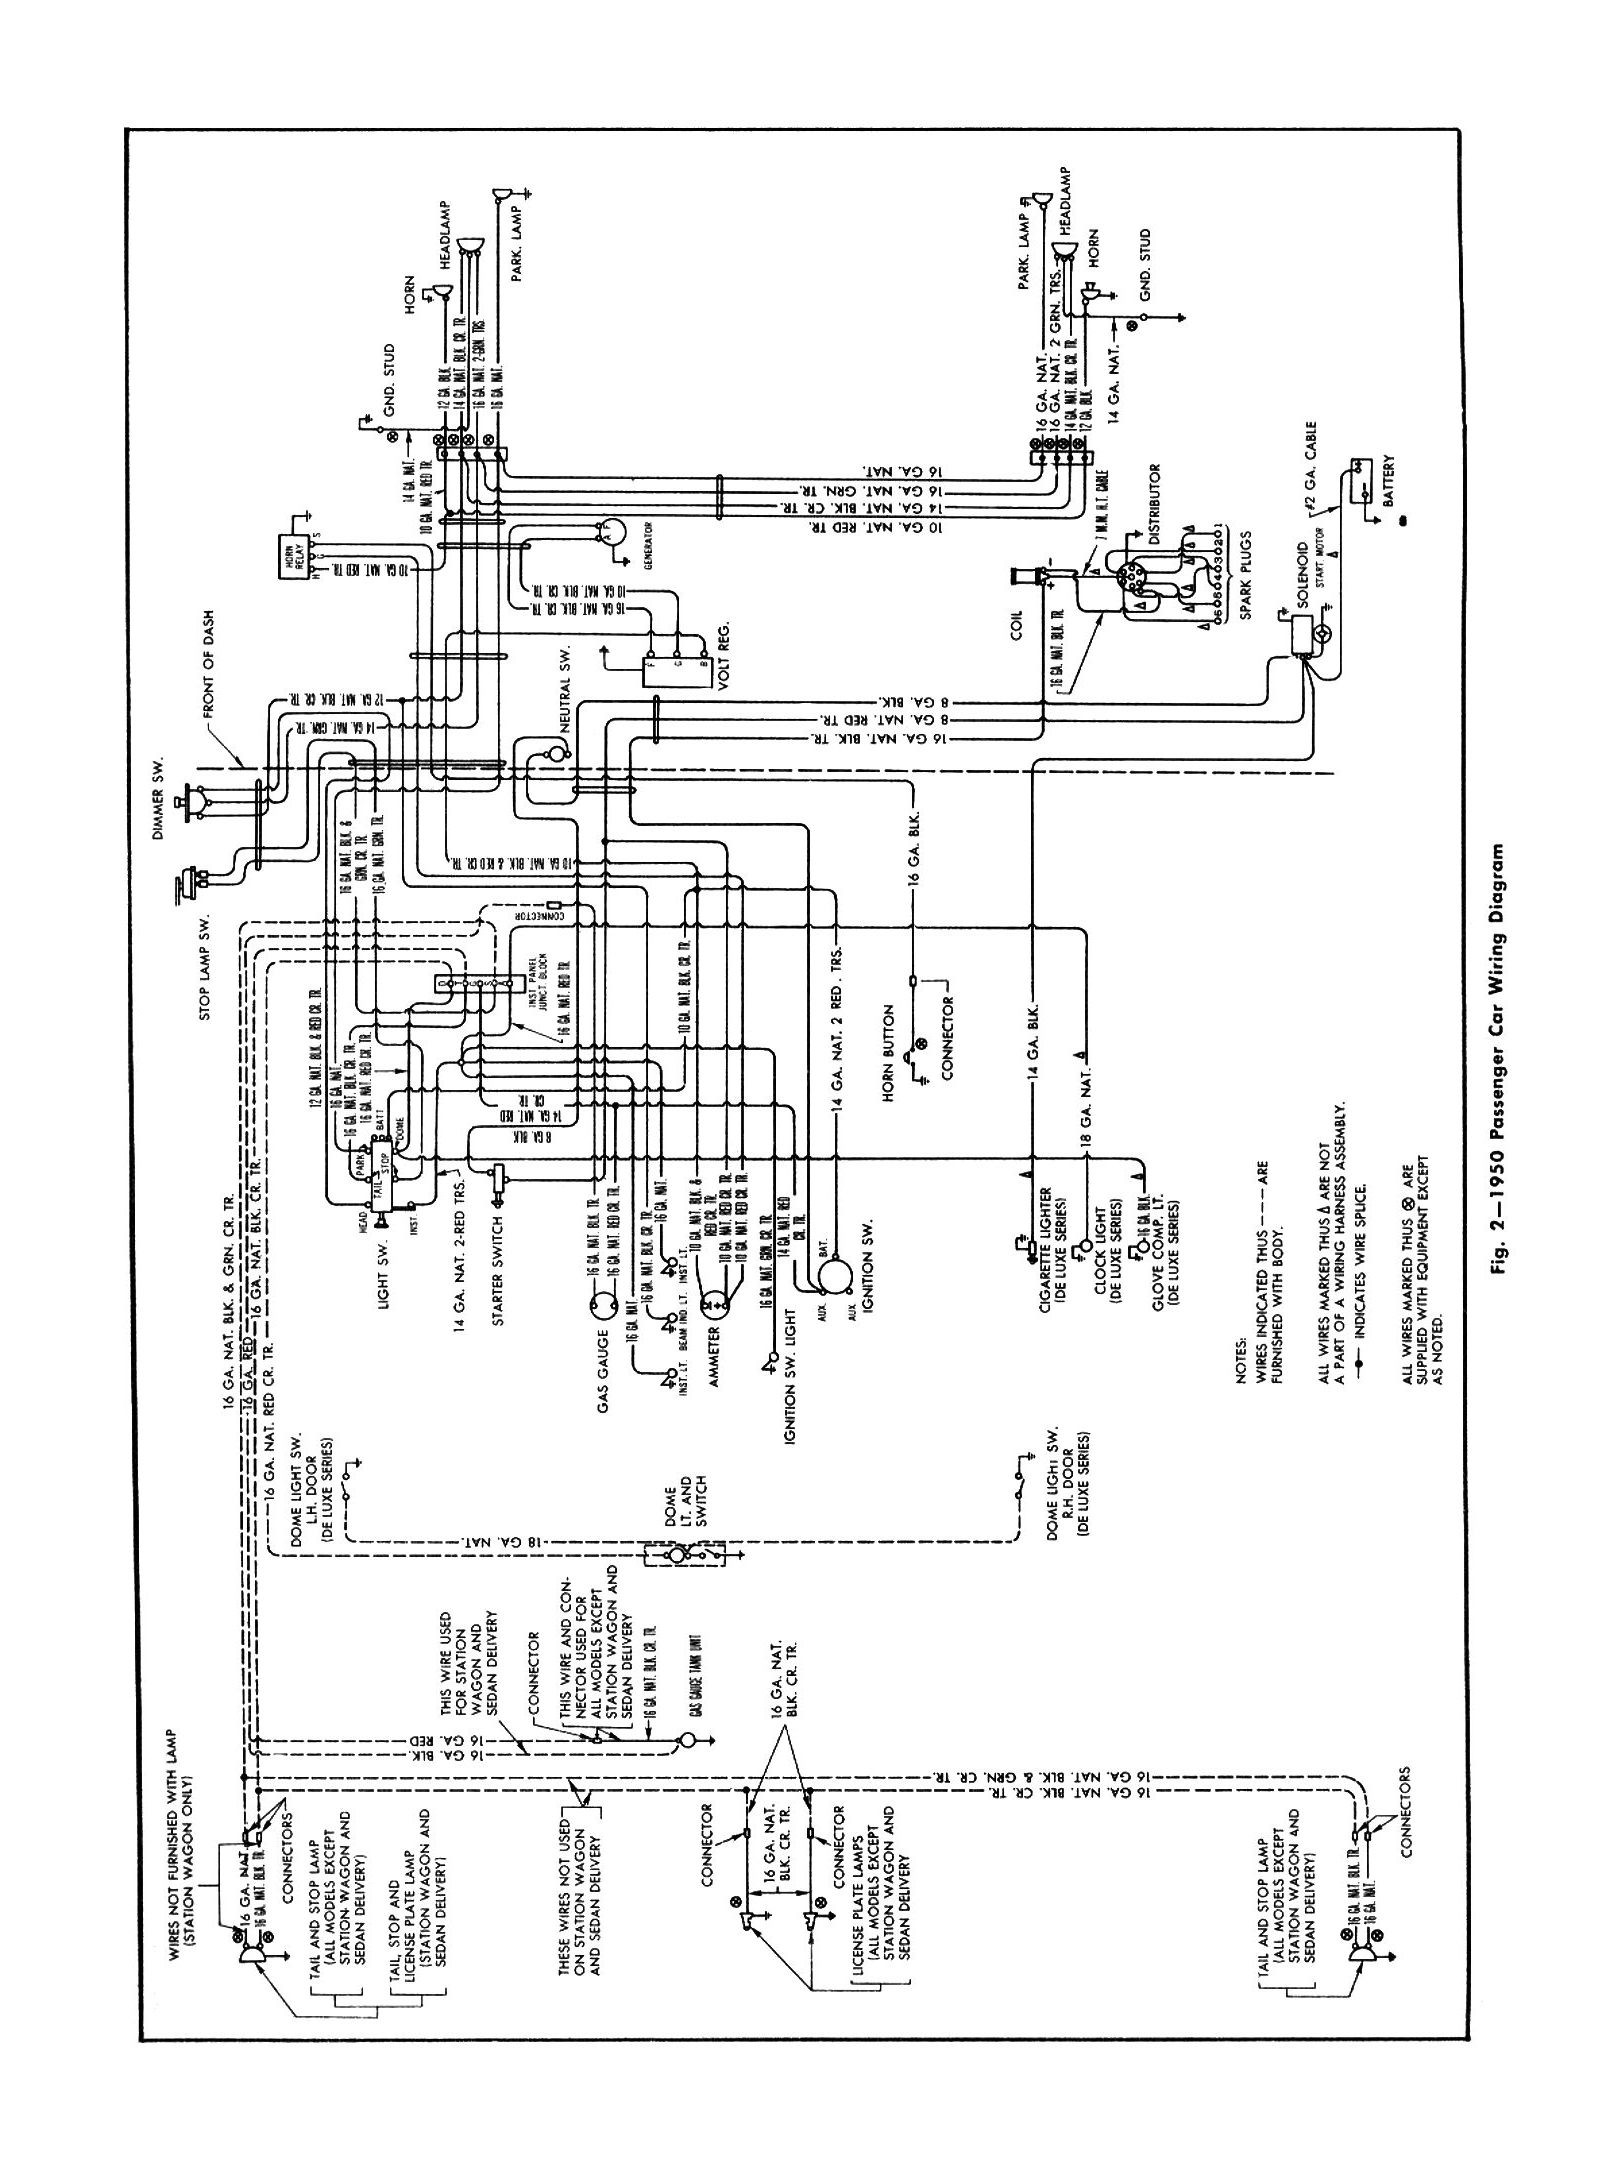 50car chevy wiring diagrams chevy truck wiring diagram at et-consult.org